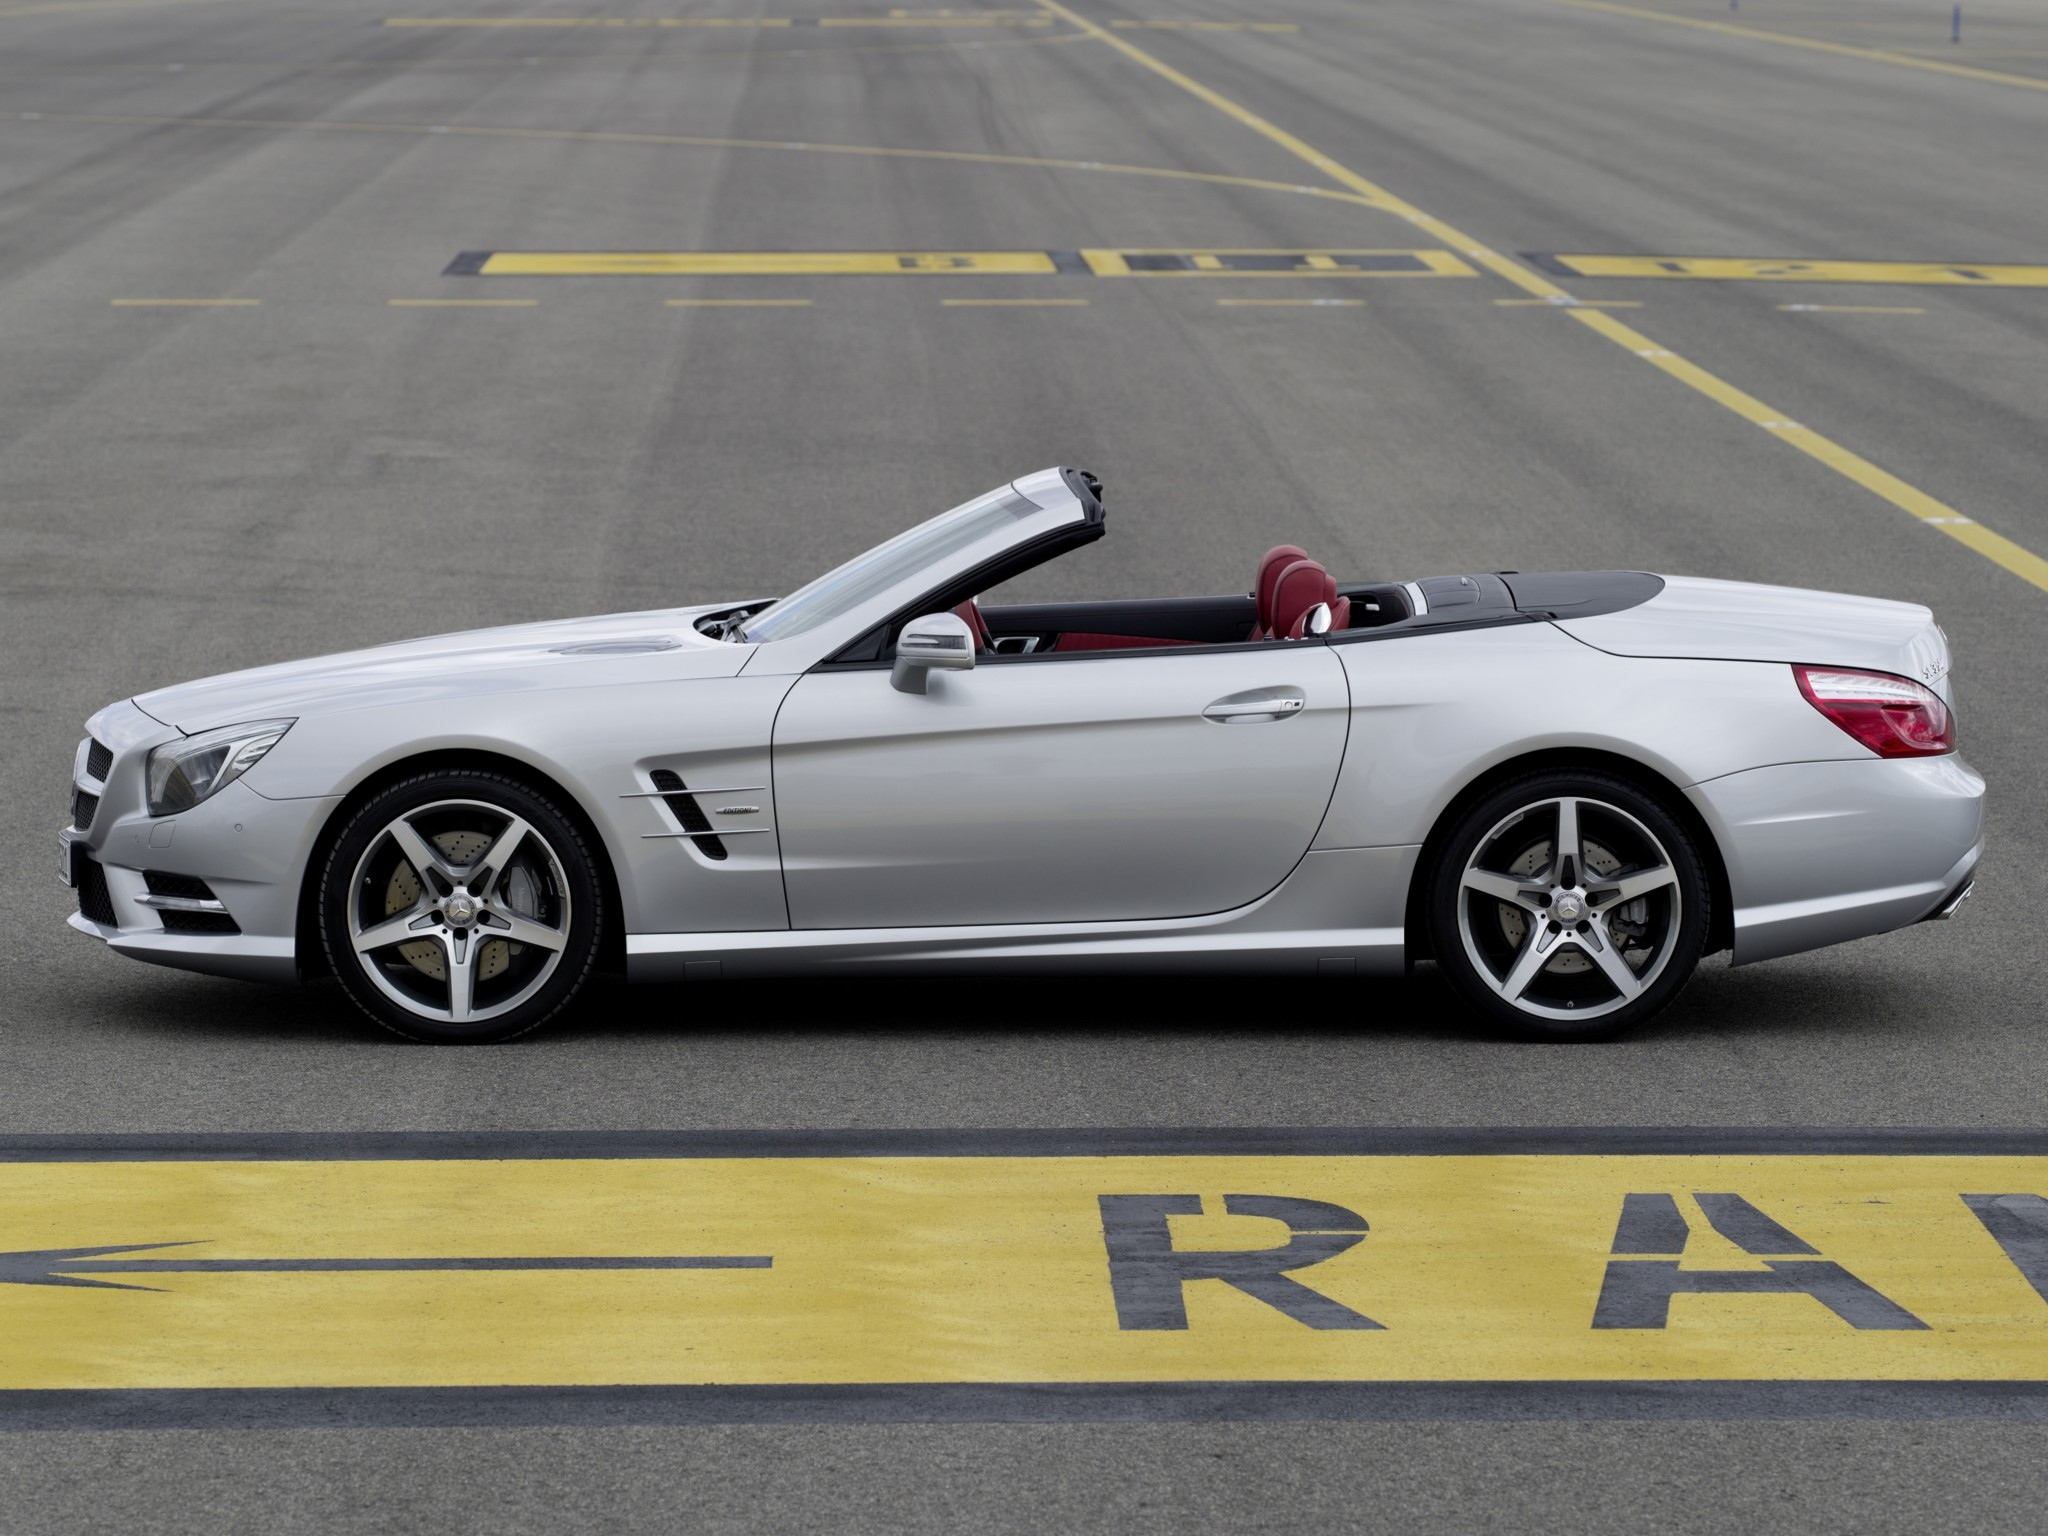 2019 Mercedes Benz SL Class Sports Package photo - 5